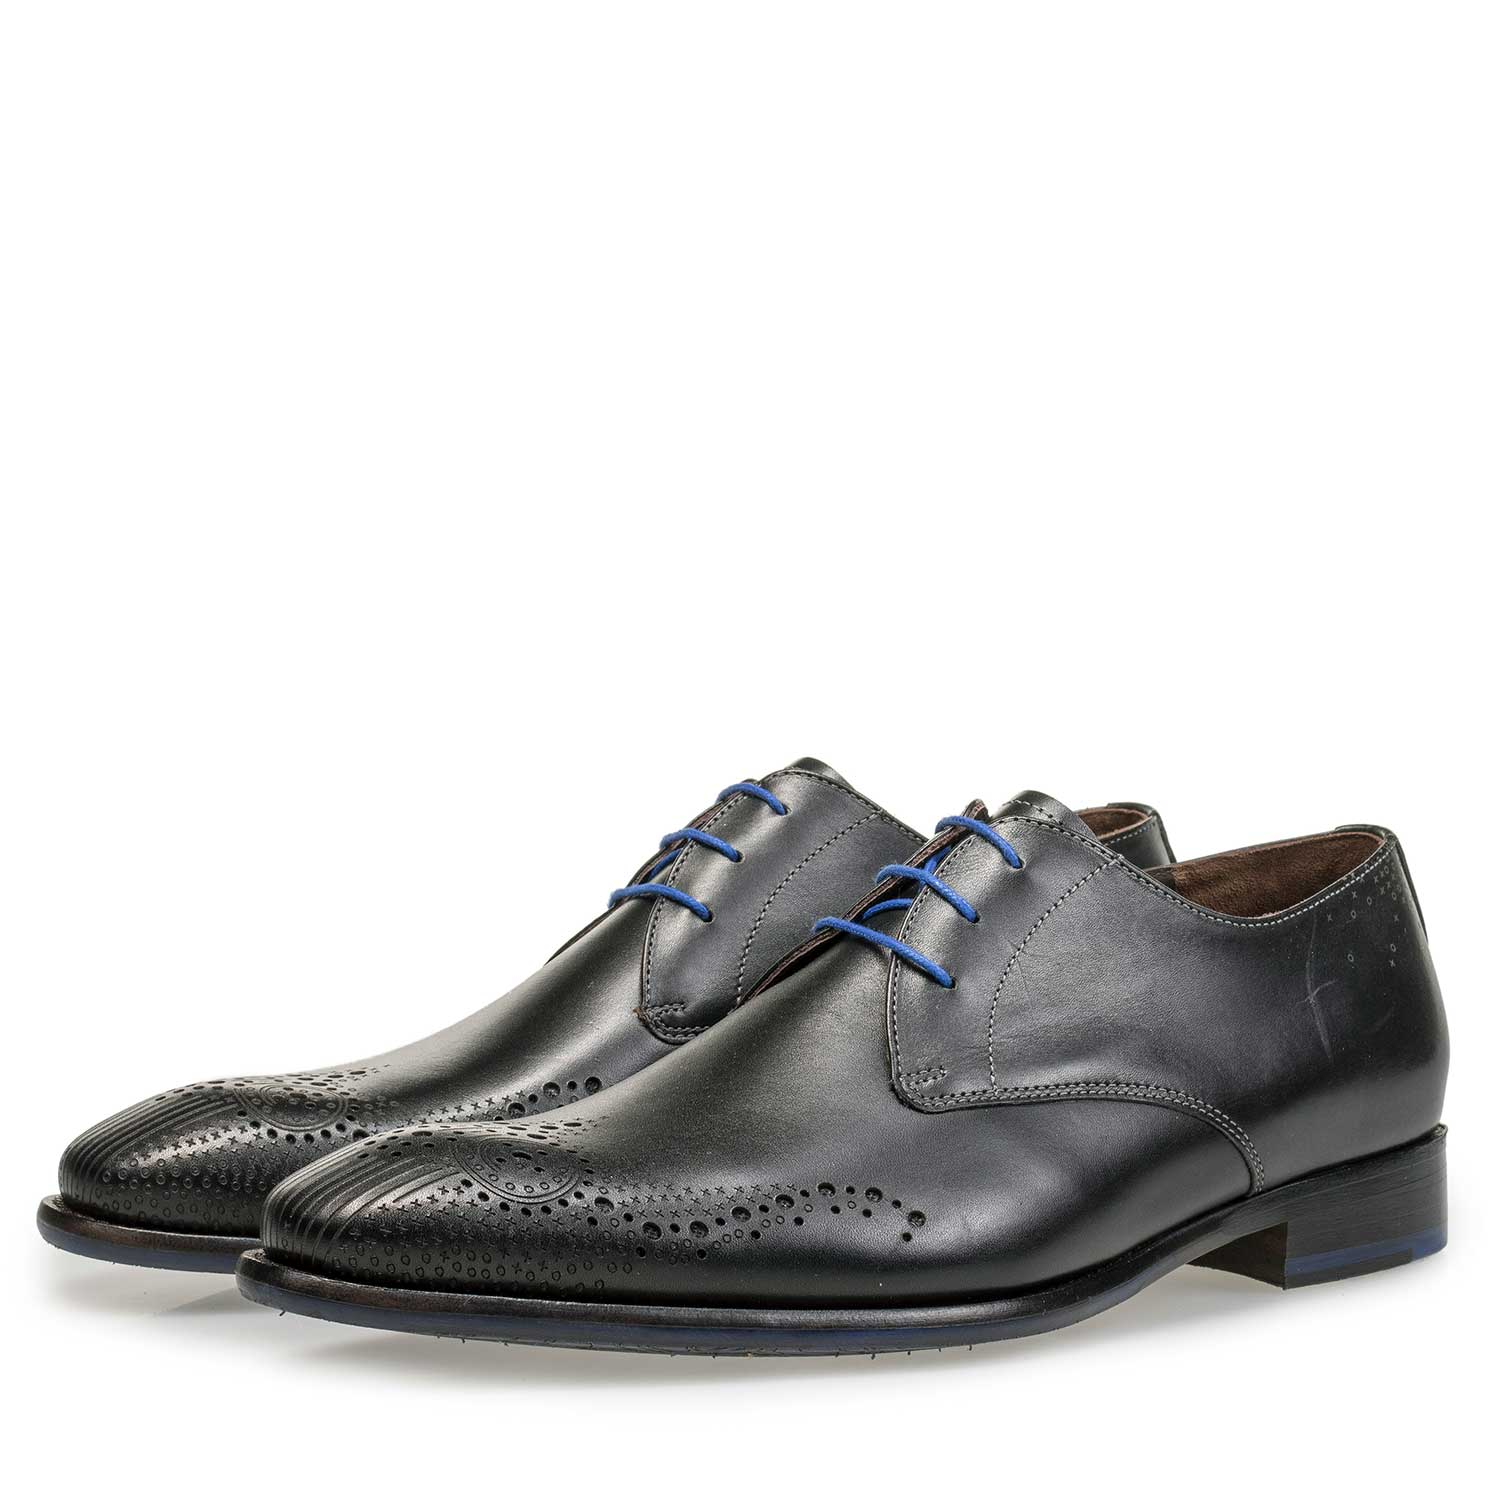 18075/03 - Black brogue lace shoe made of calf's leather